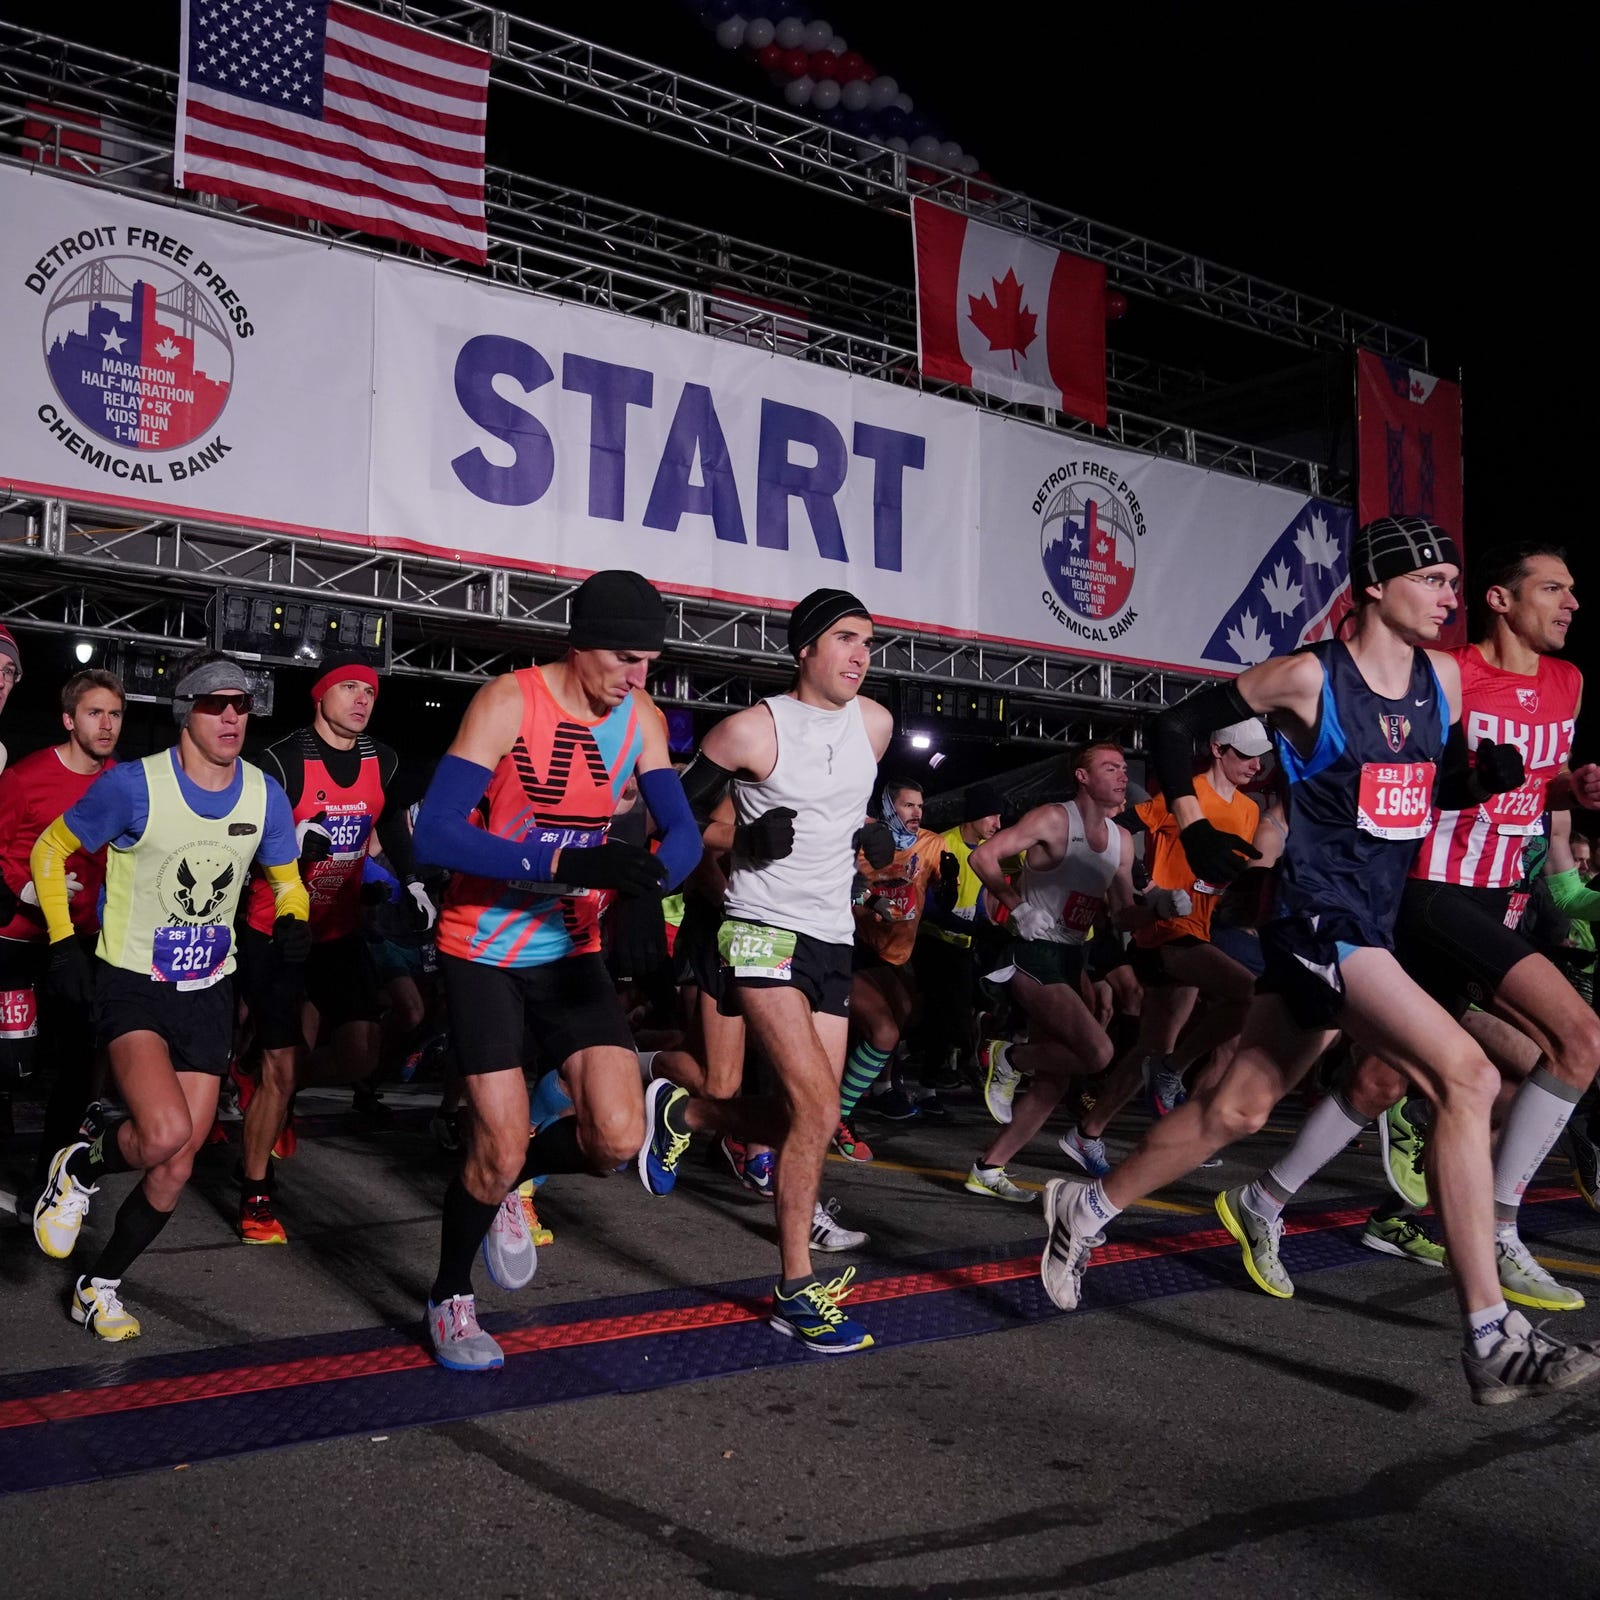 2018 Detroit marathon: Live updates from race day